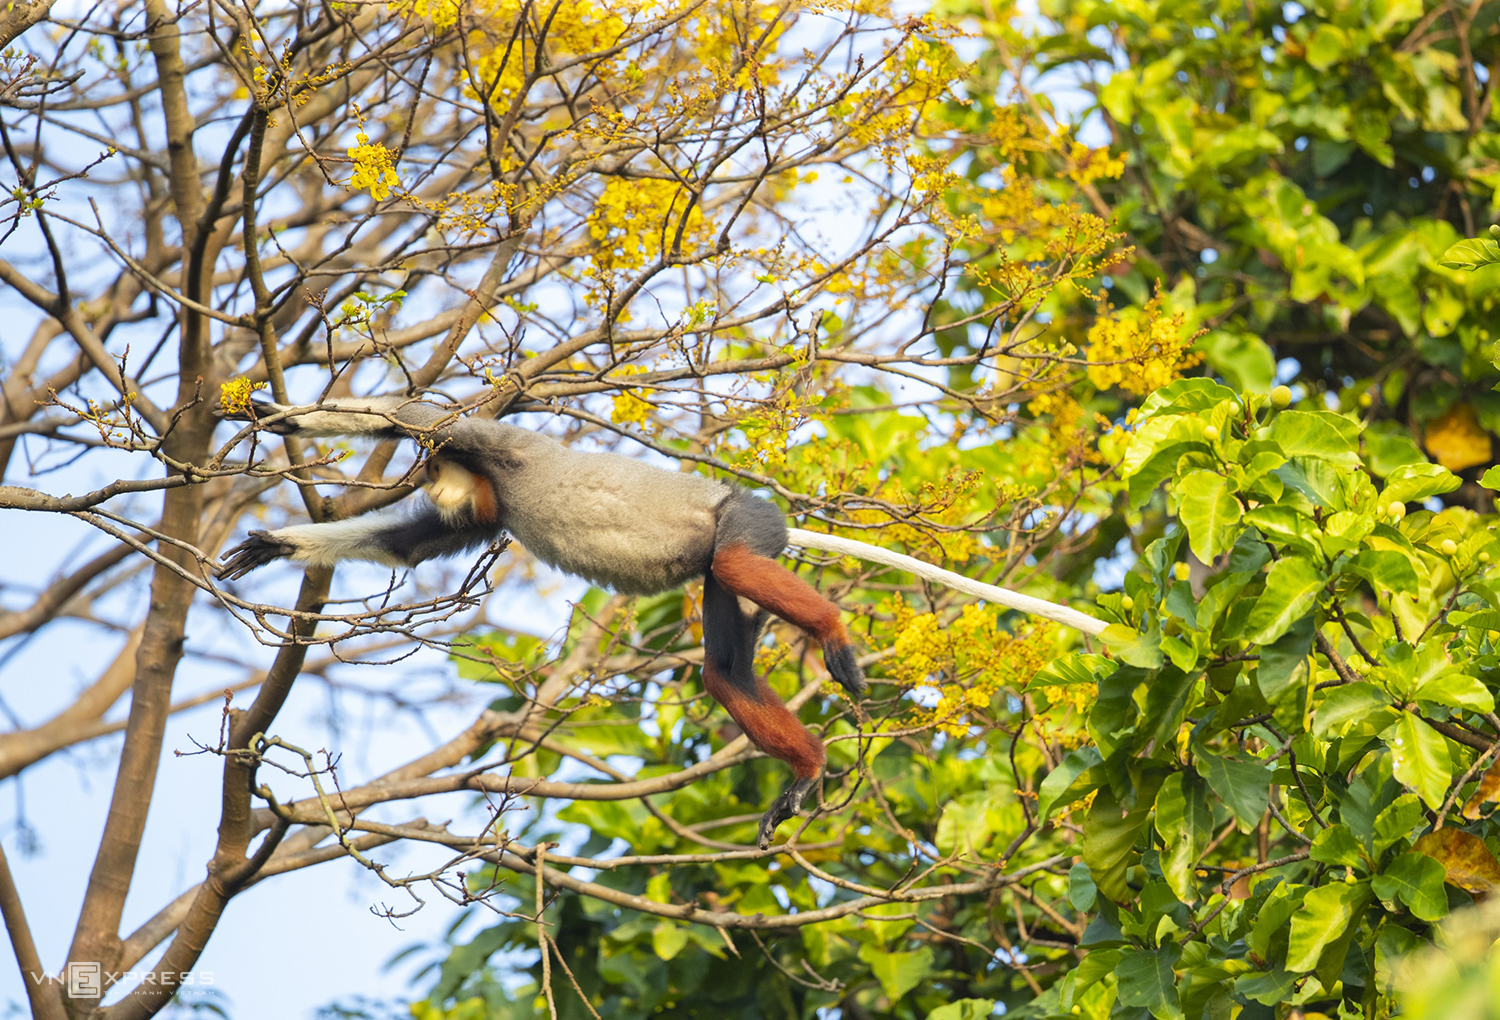 A douc langur on a yellow famboyant tree. These trees grow 9-10 meters and have lovely yellow flowers.